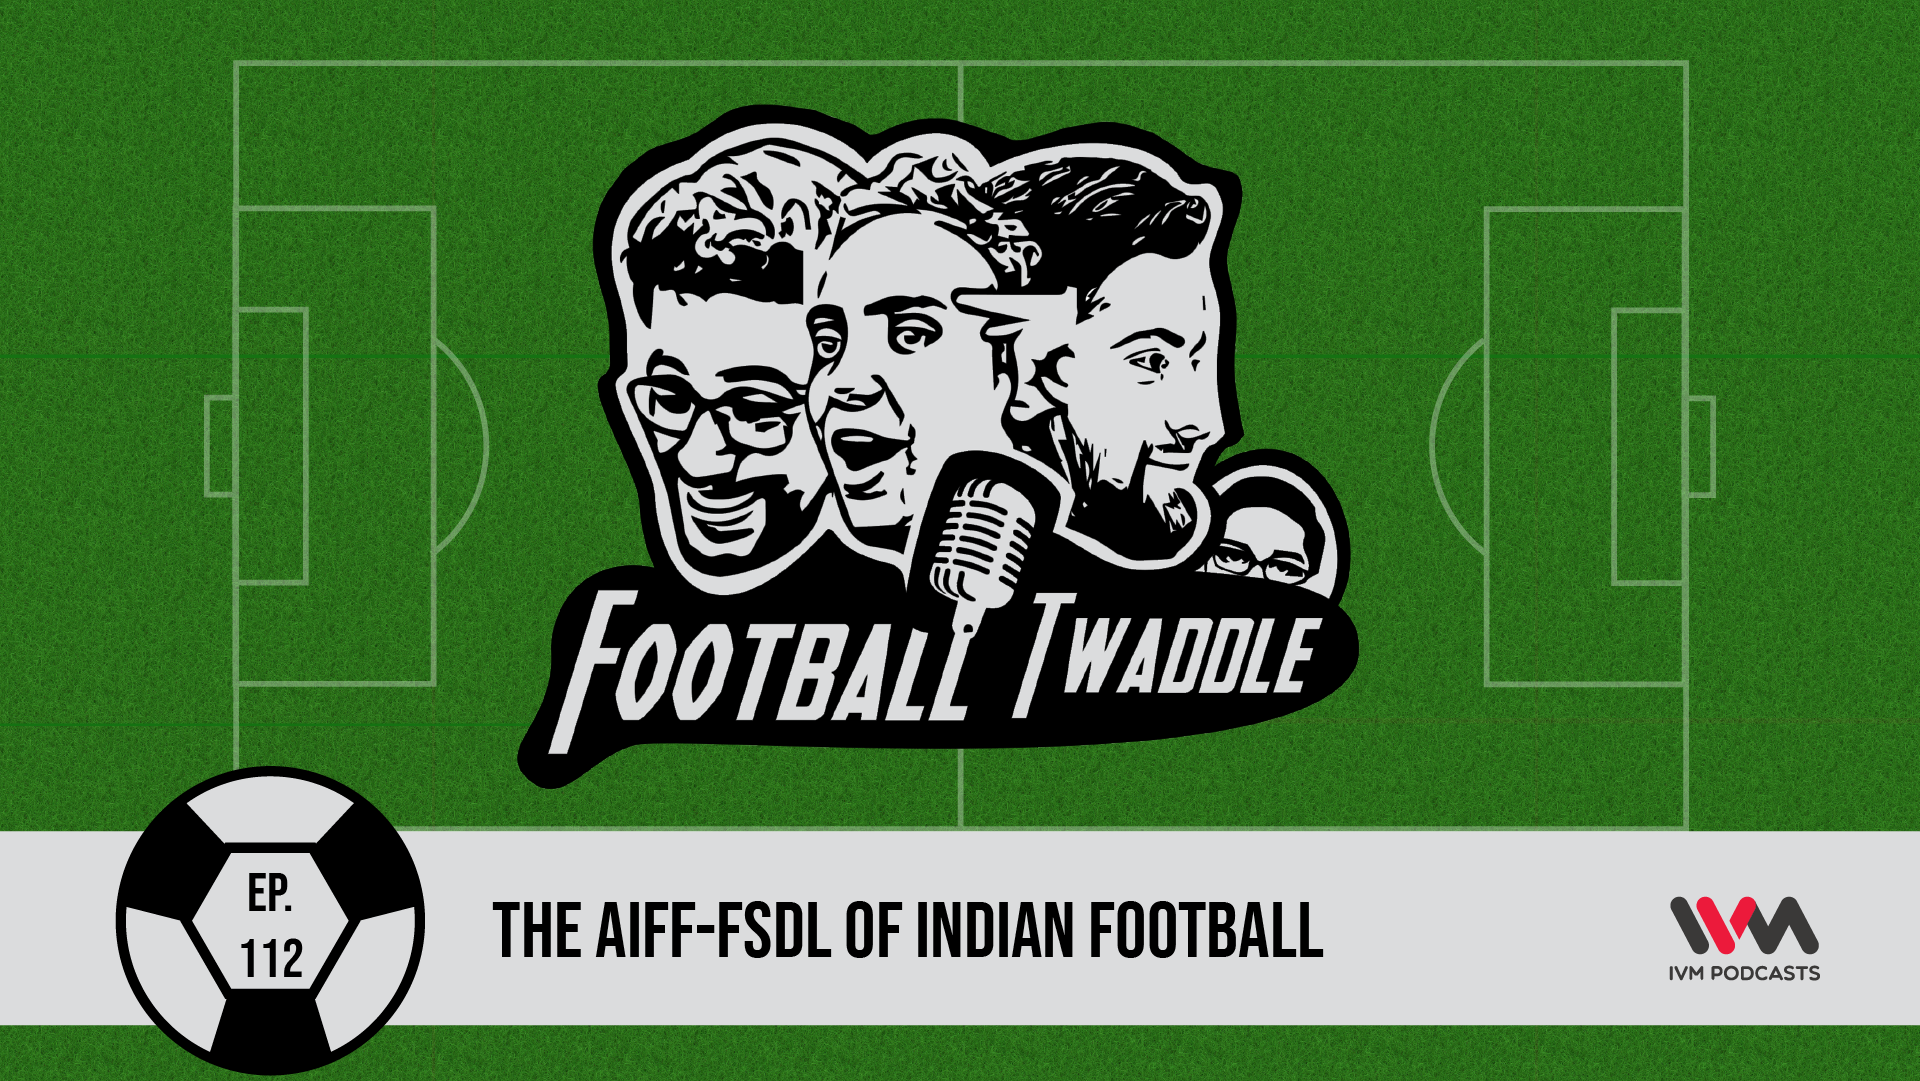 FootballTwaddleEpisode112.png